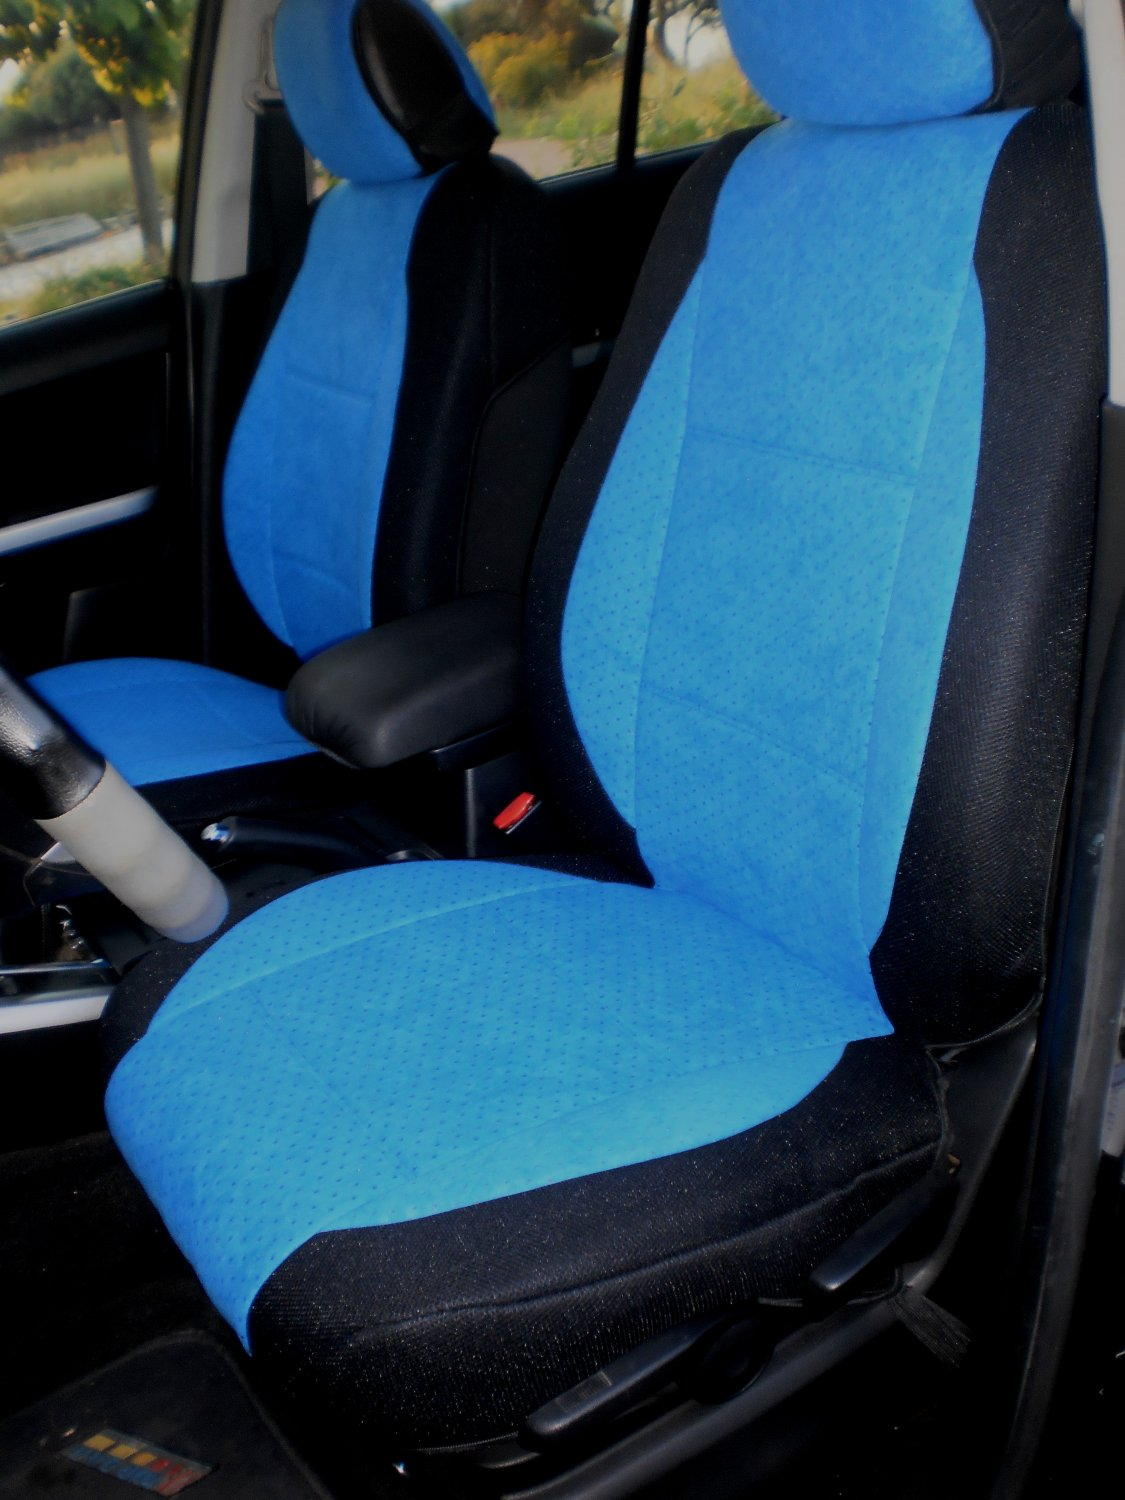 TWO FRONT CUSTOM BLUE/BLACK VELOUR SYNTHETIC CAR SEAT COVERS (Fits Mercedes SLK-Class 1996�2004)